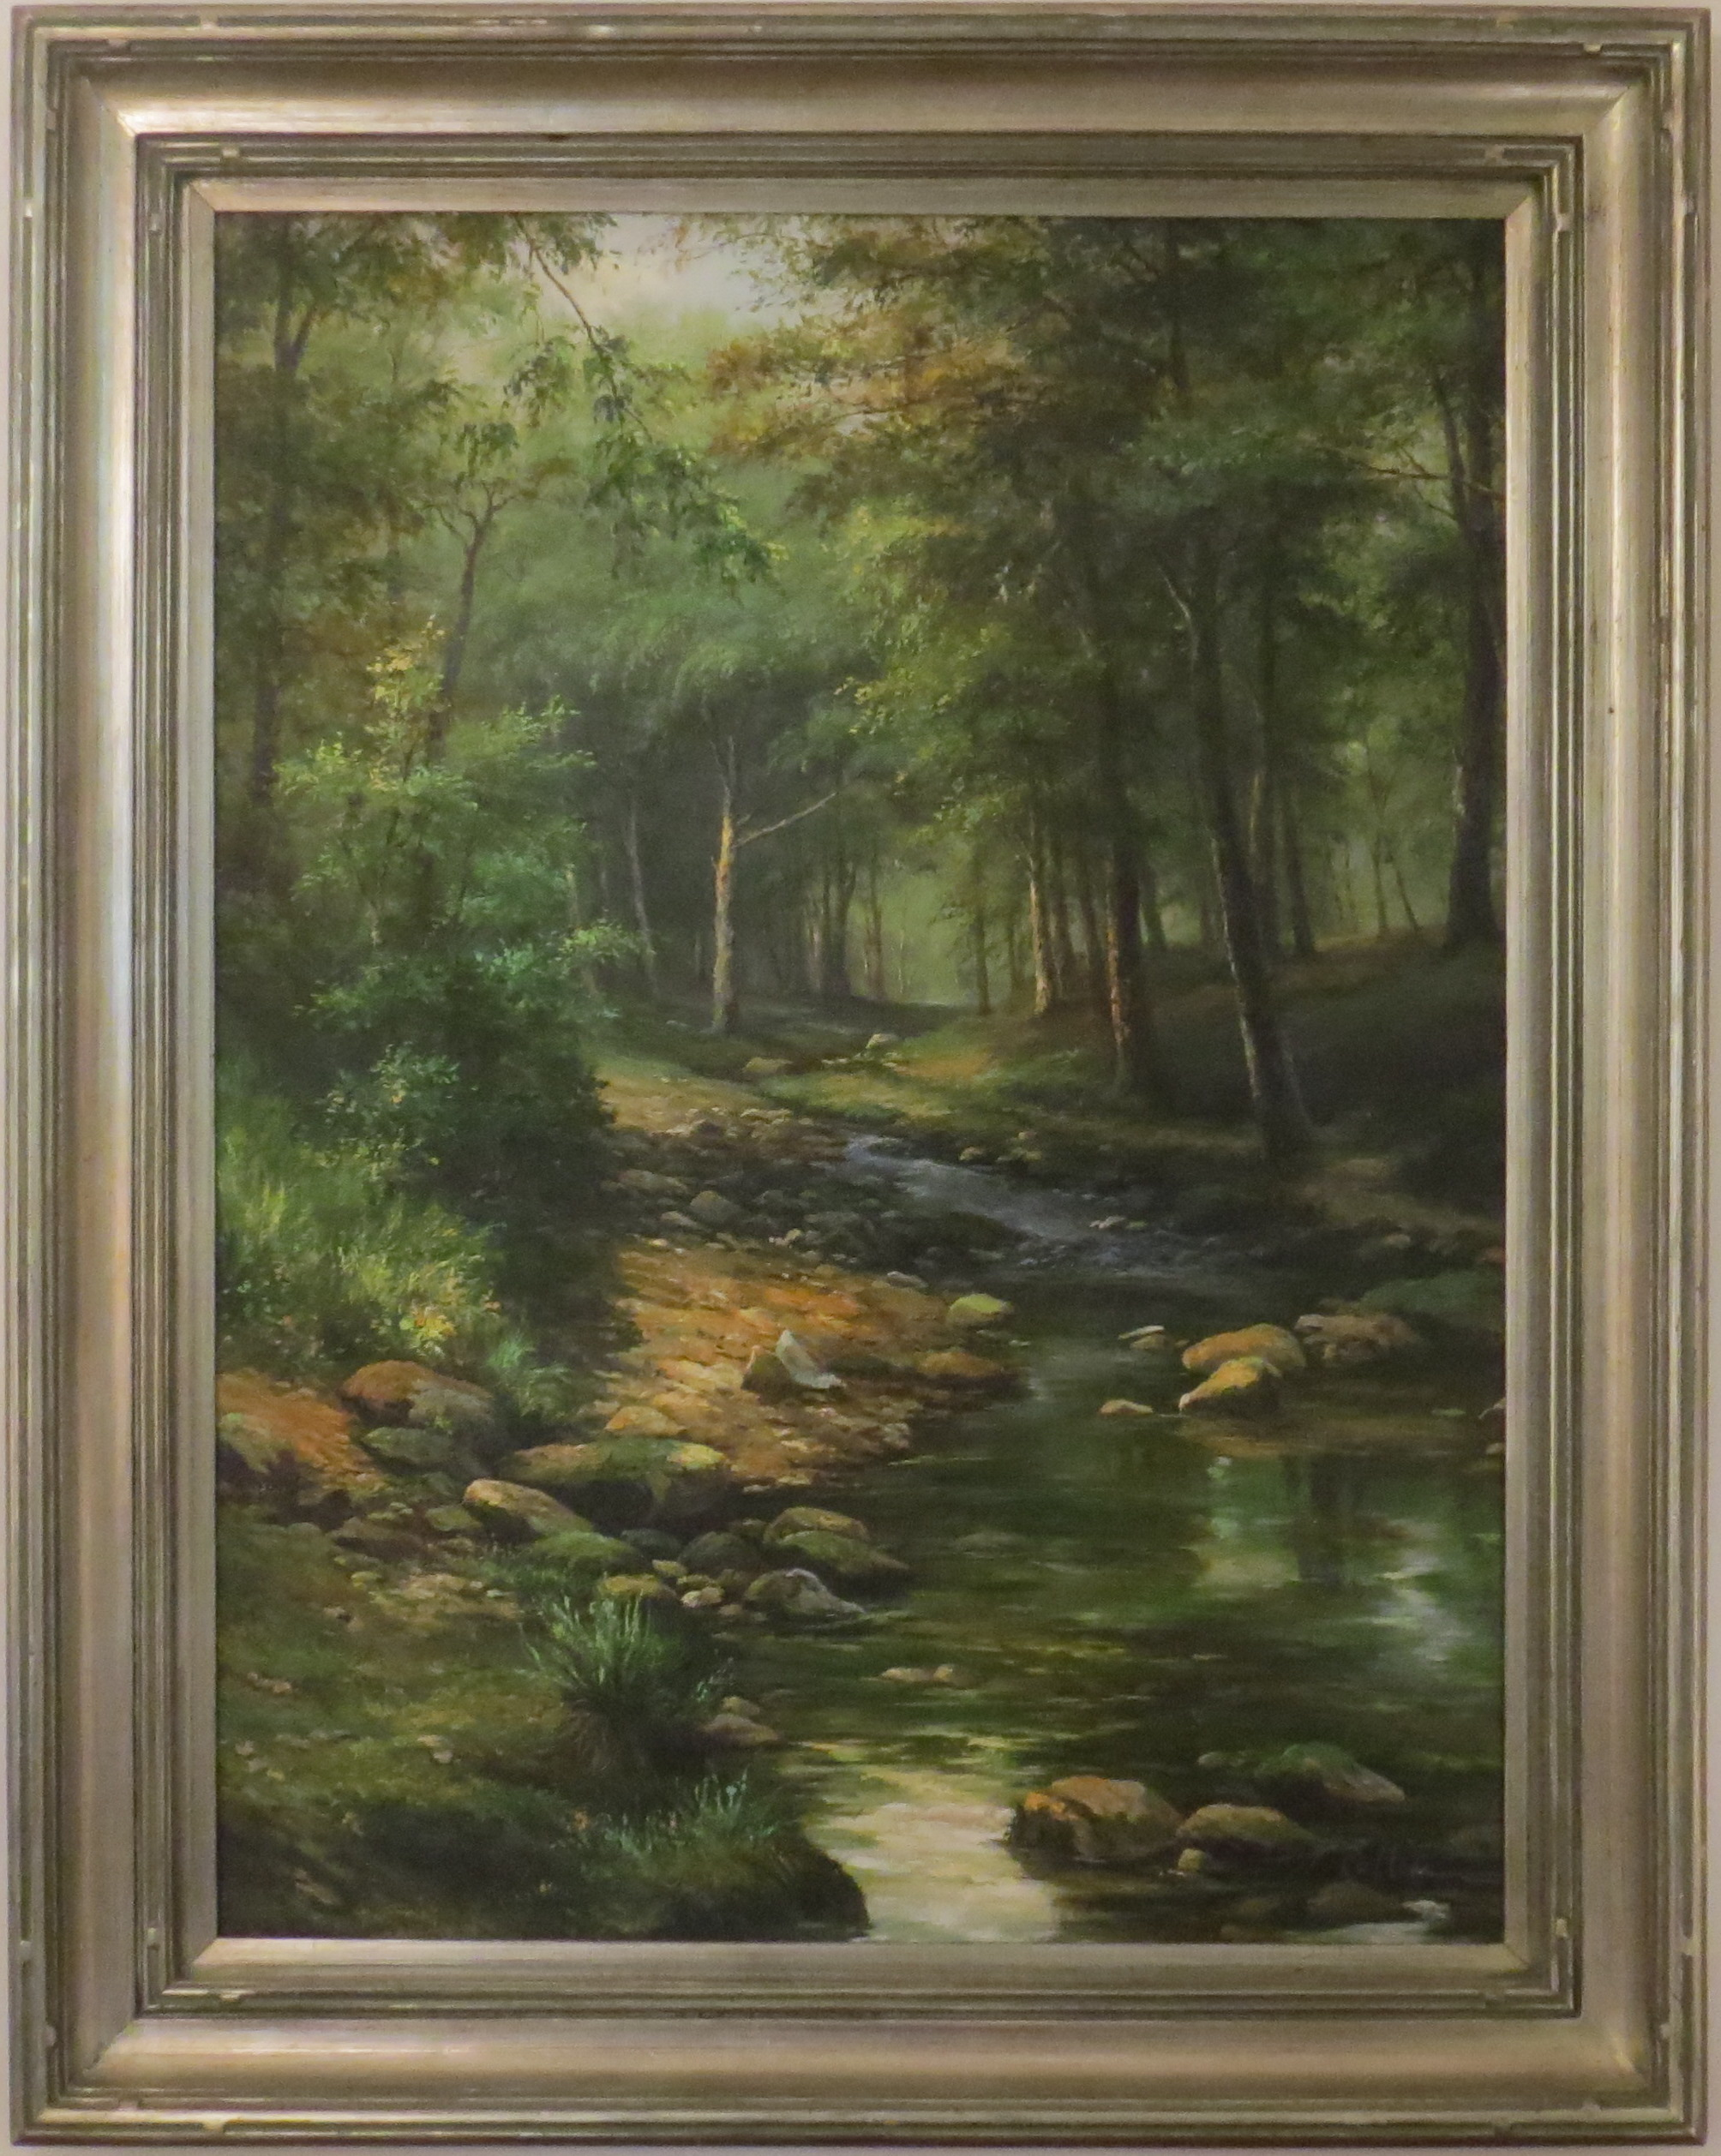 Oil on Canvas of a Forest Scene with Steam & Rocks, signed J. Collin